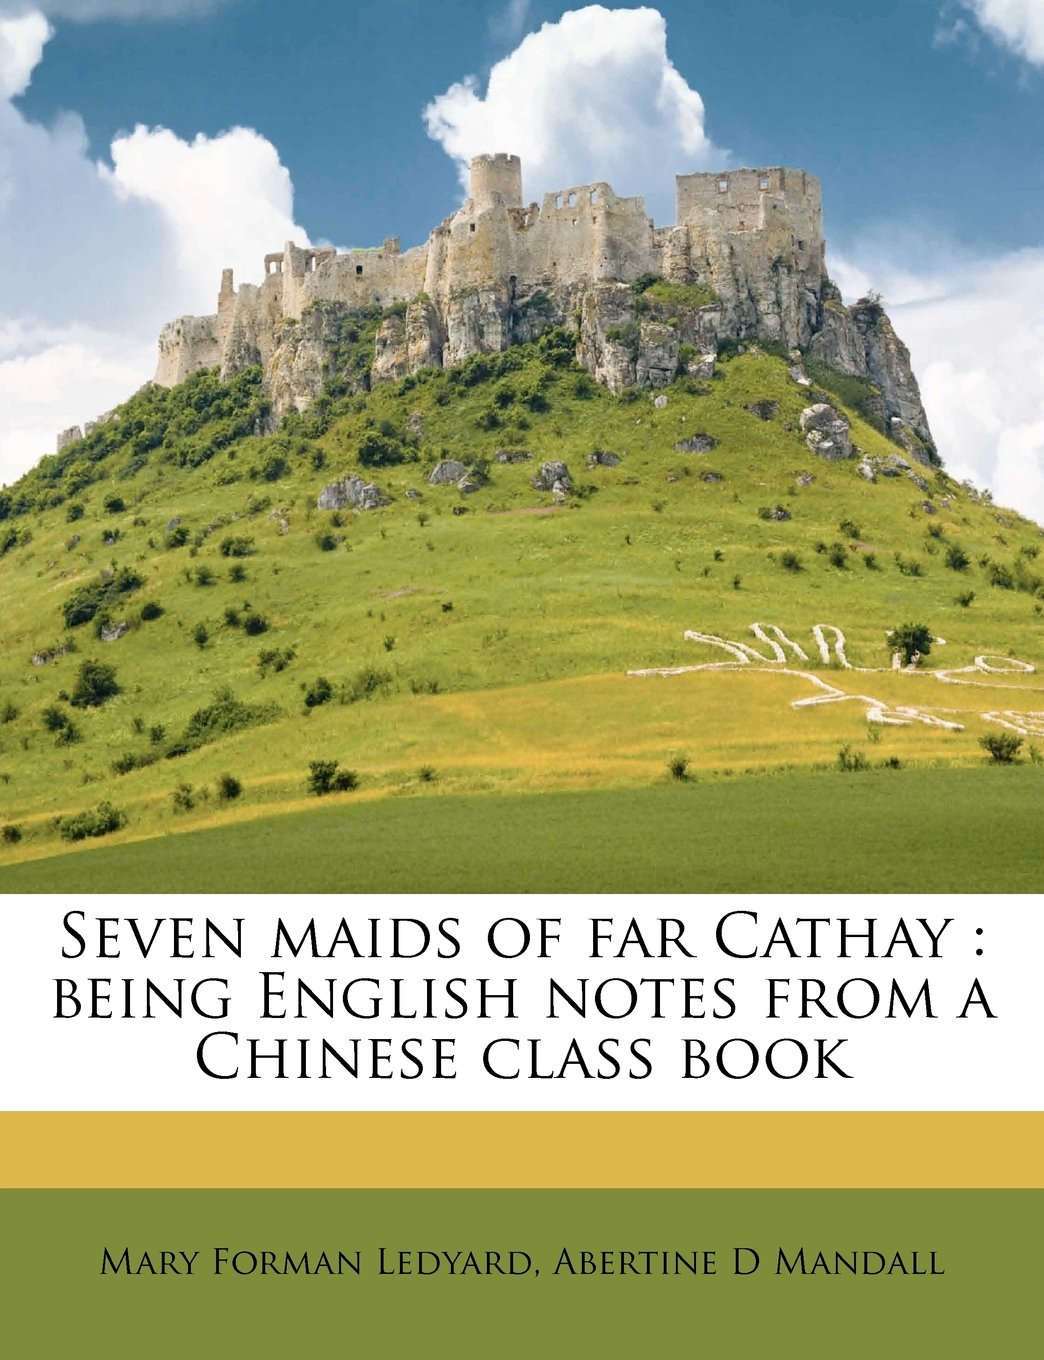 Download Seven maids of far Cathay: being English notes from a Chinese class book pdf